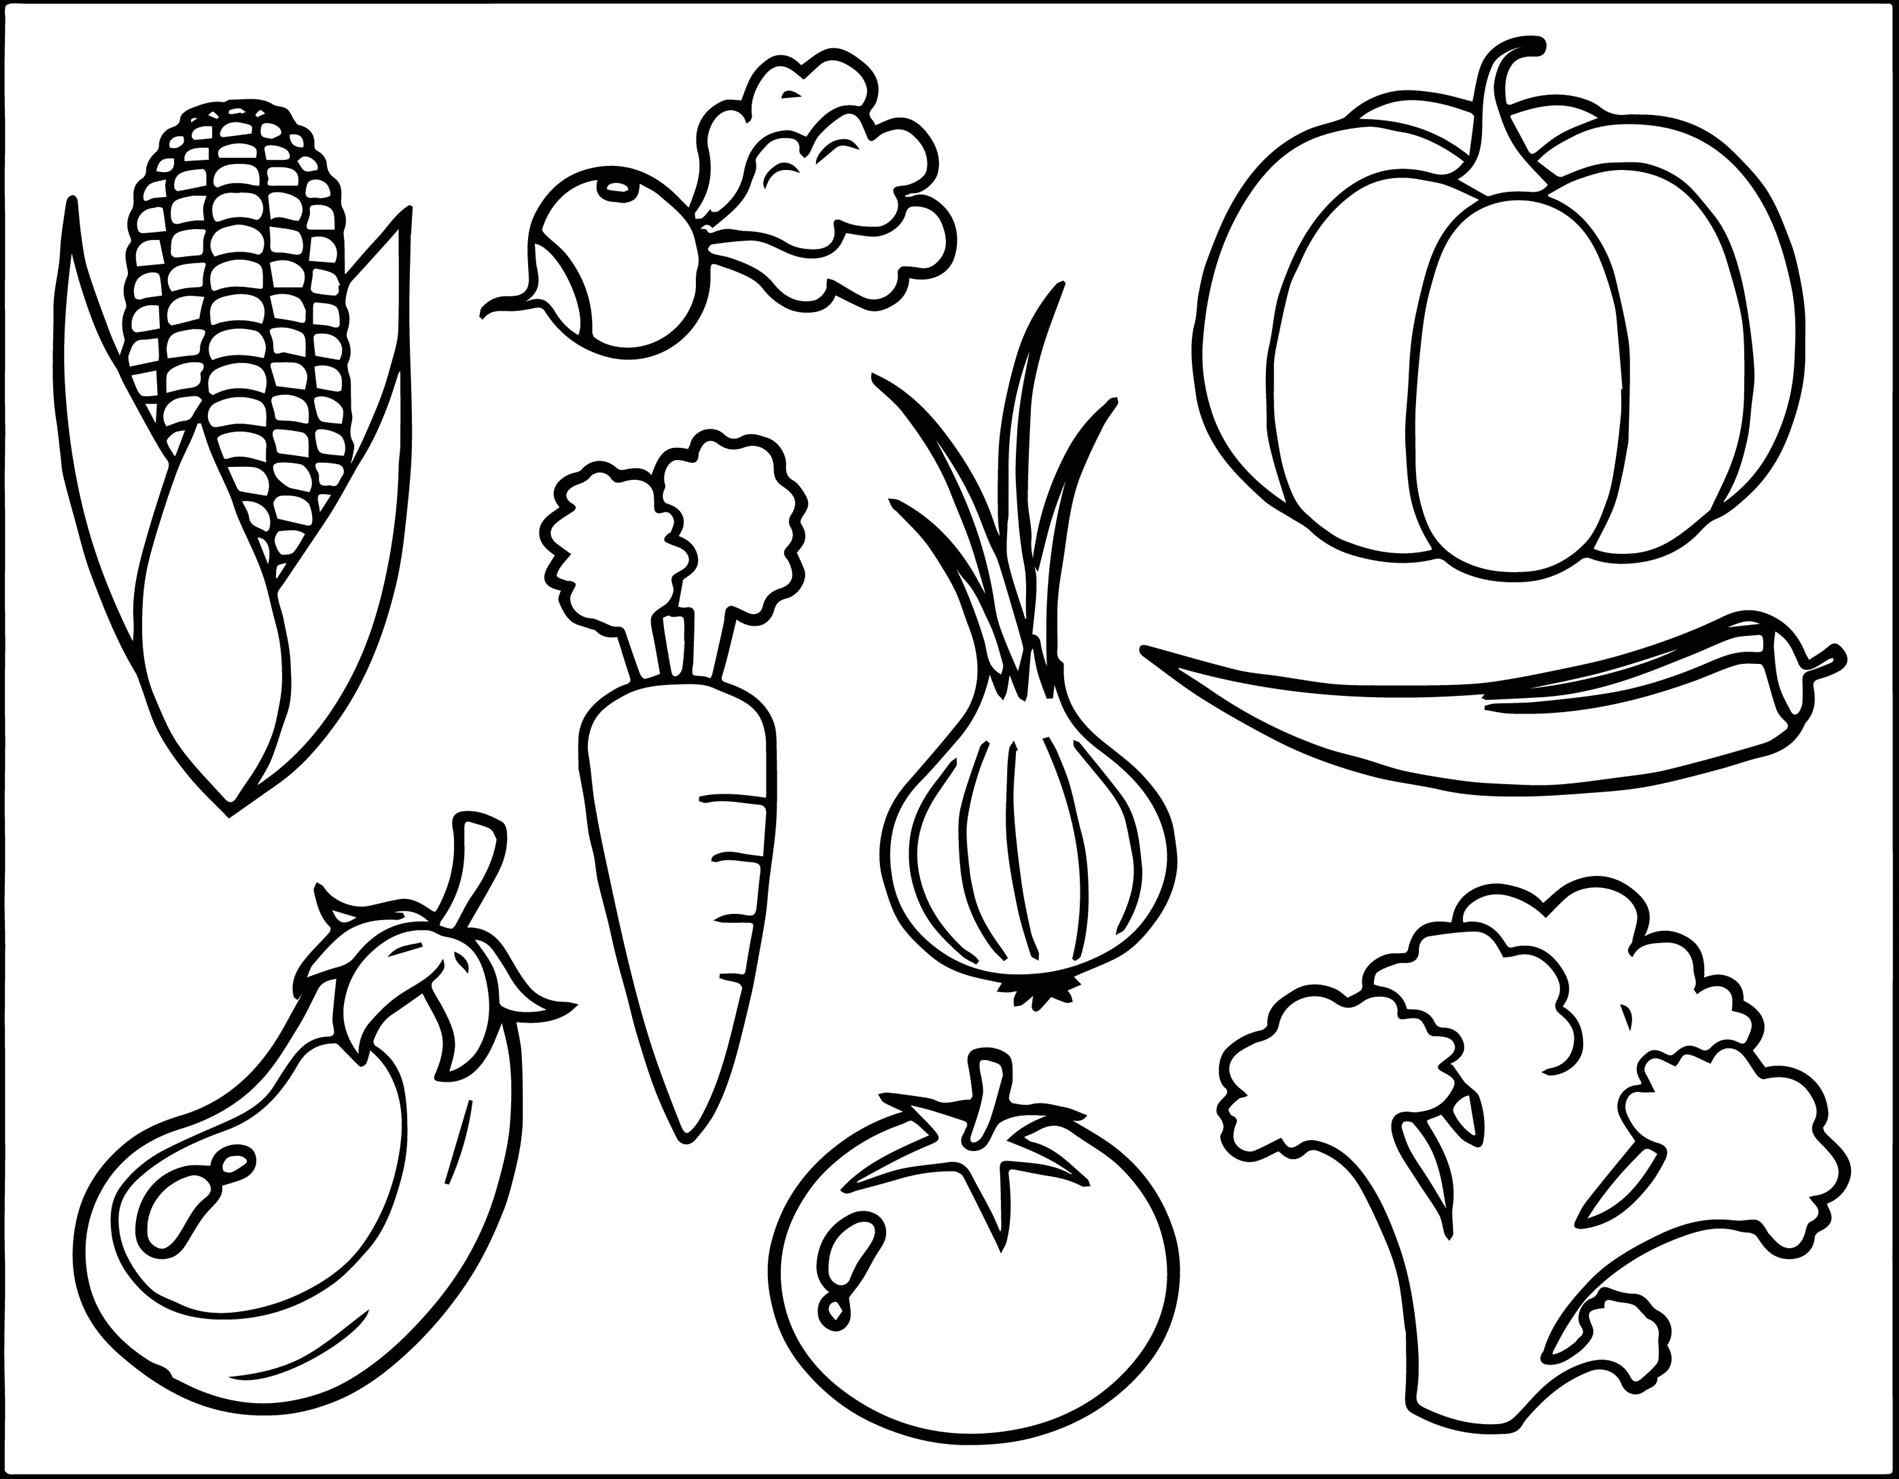 pictures of food coloring free printable food coloring pages for kids cool2bkids food coloring pictures of